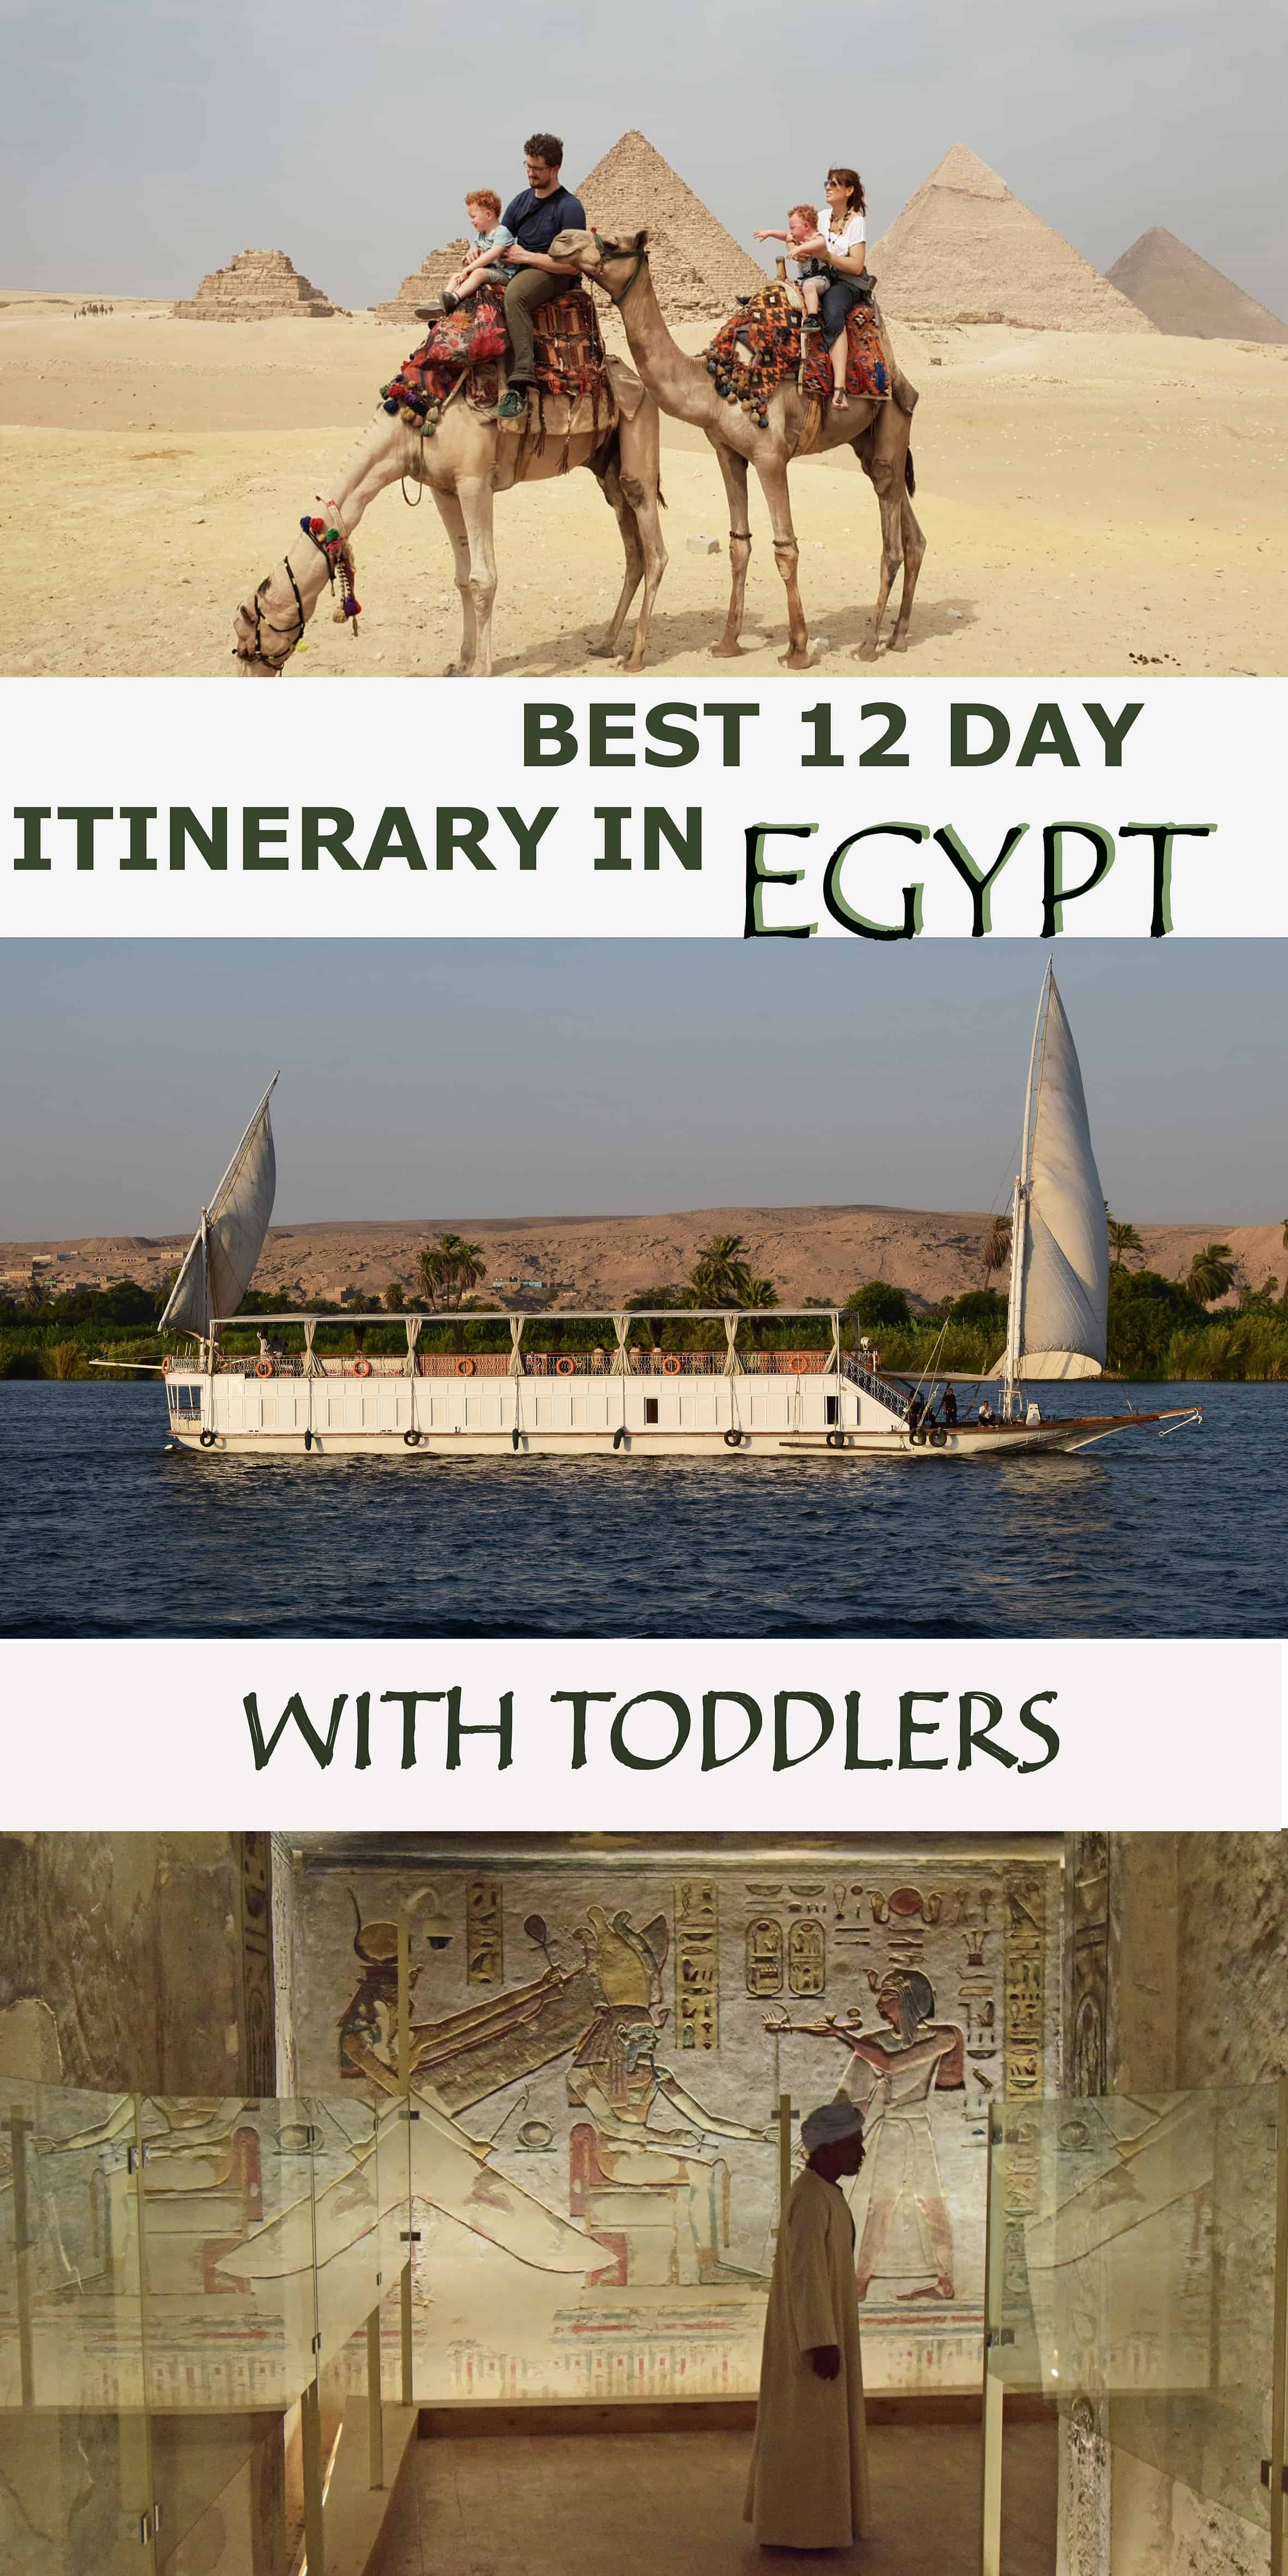 BEST 12 DAY ITINERARY IN EGYPT WITH TODDLERS